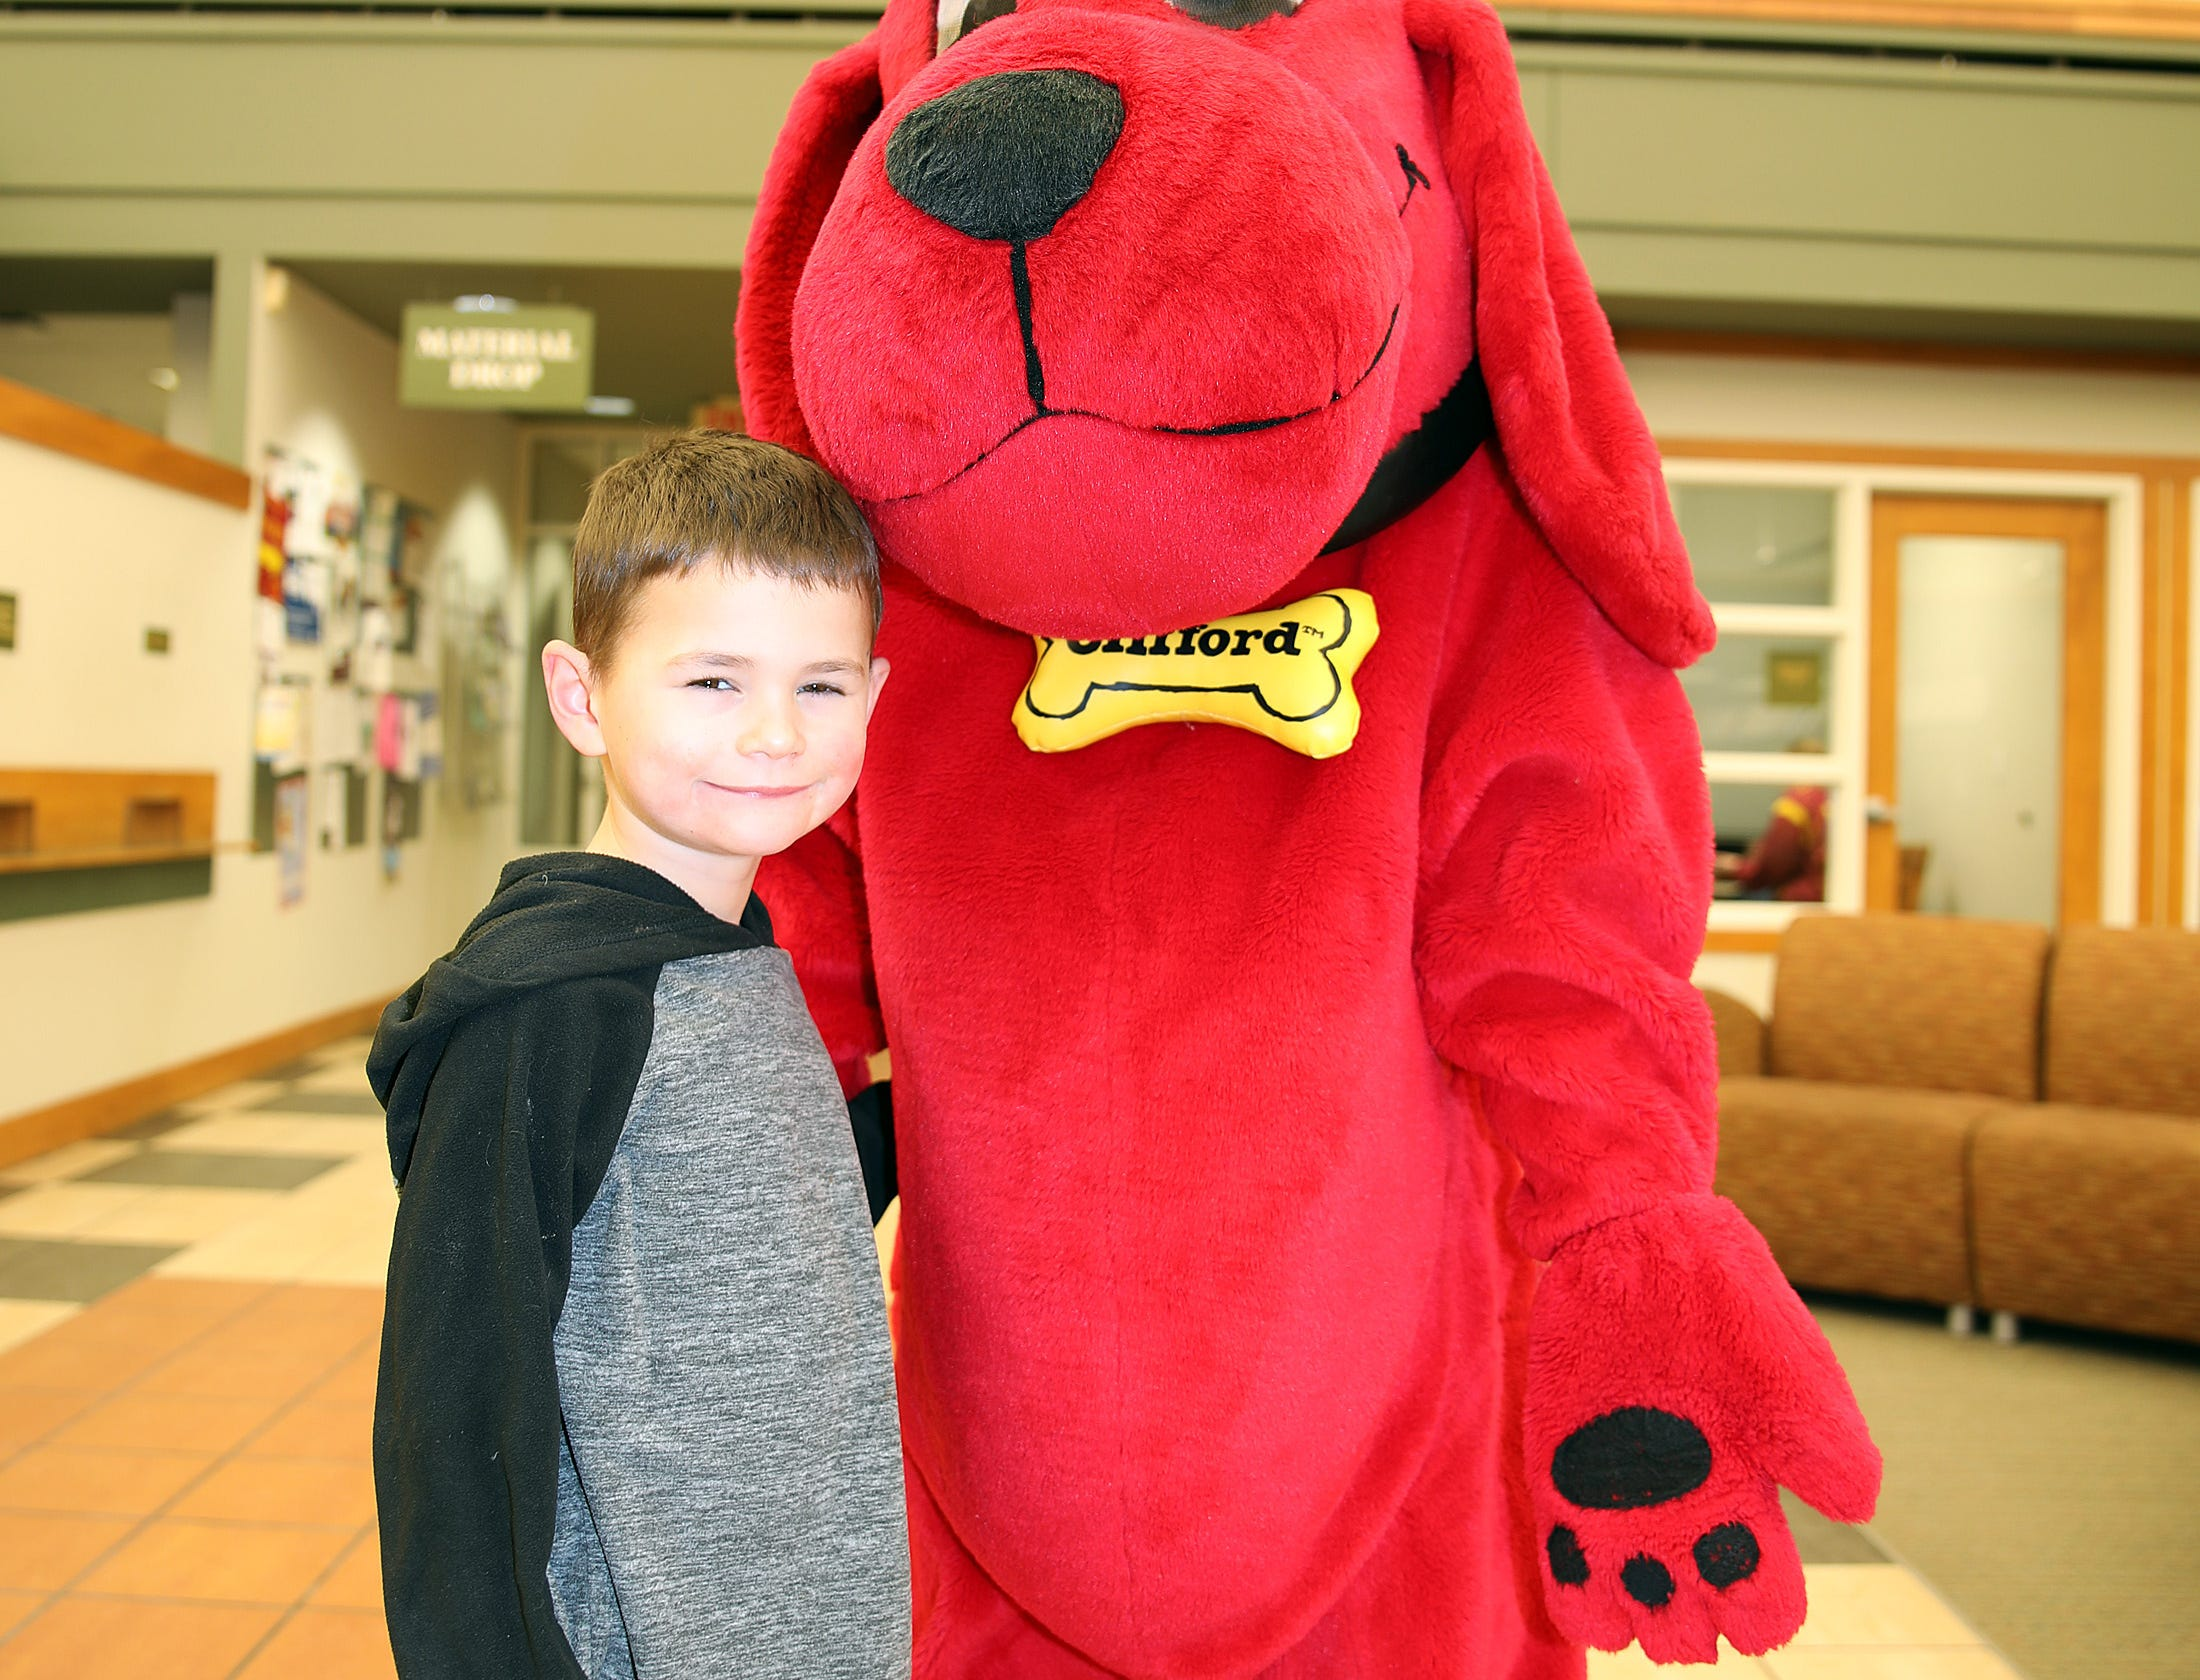 Max Brower, 6, of Ankeny stops for a photo with Clifford the Big Red Dog during Clifford's birthday party at Kirkendall Public Library in Ankeny on Tuesday, Feb. 5, 2019.